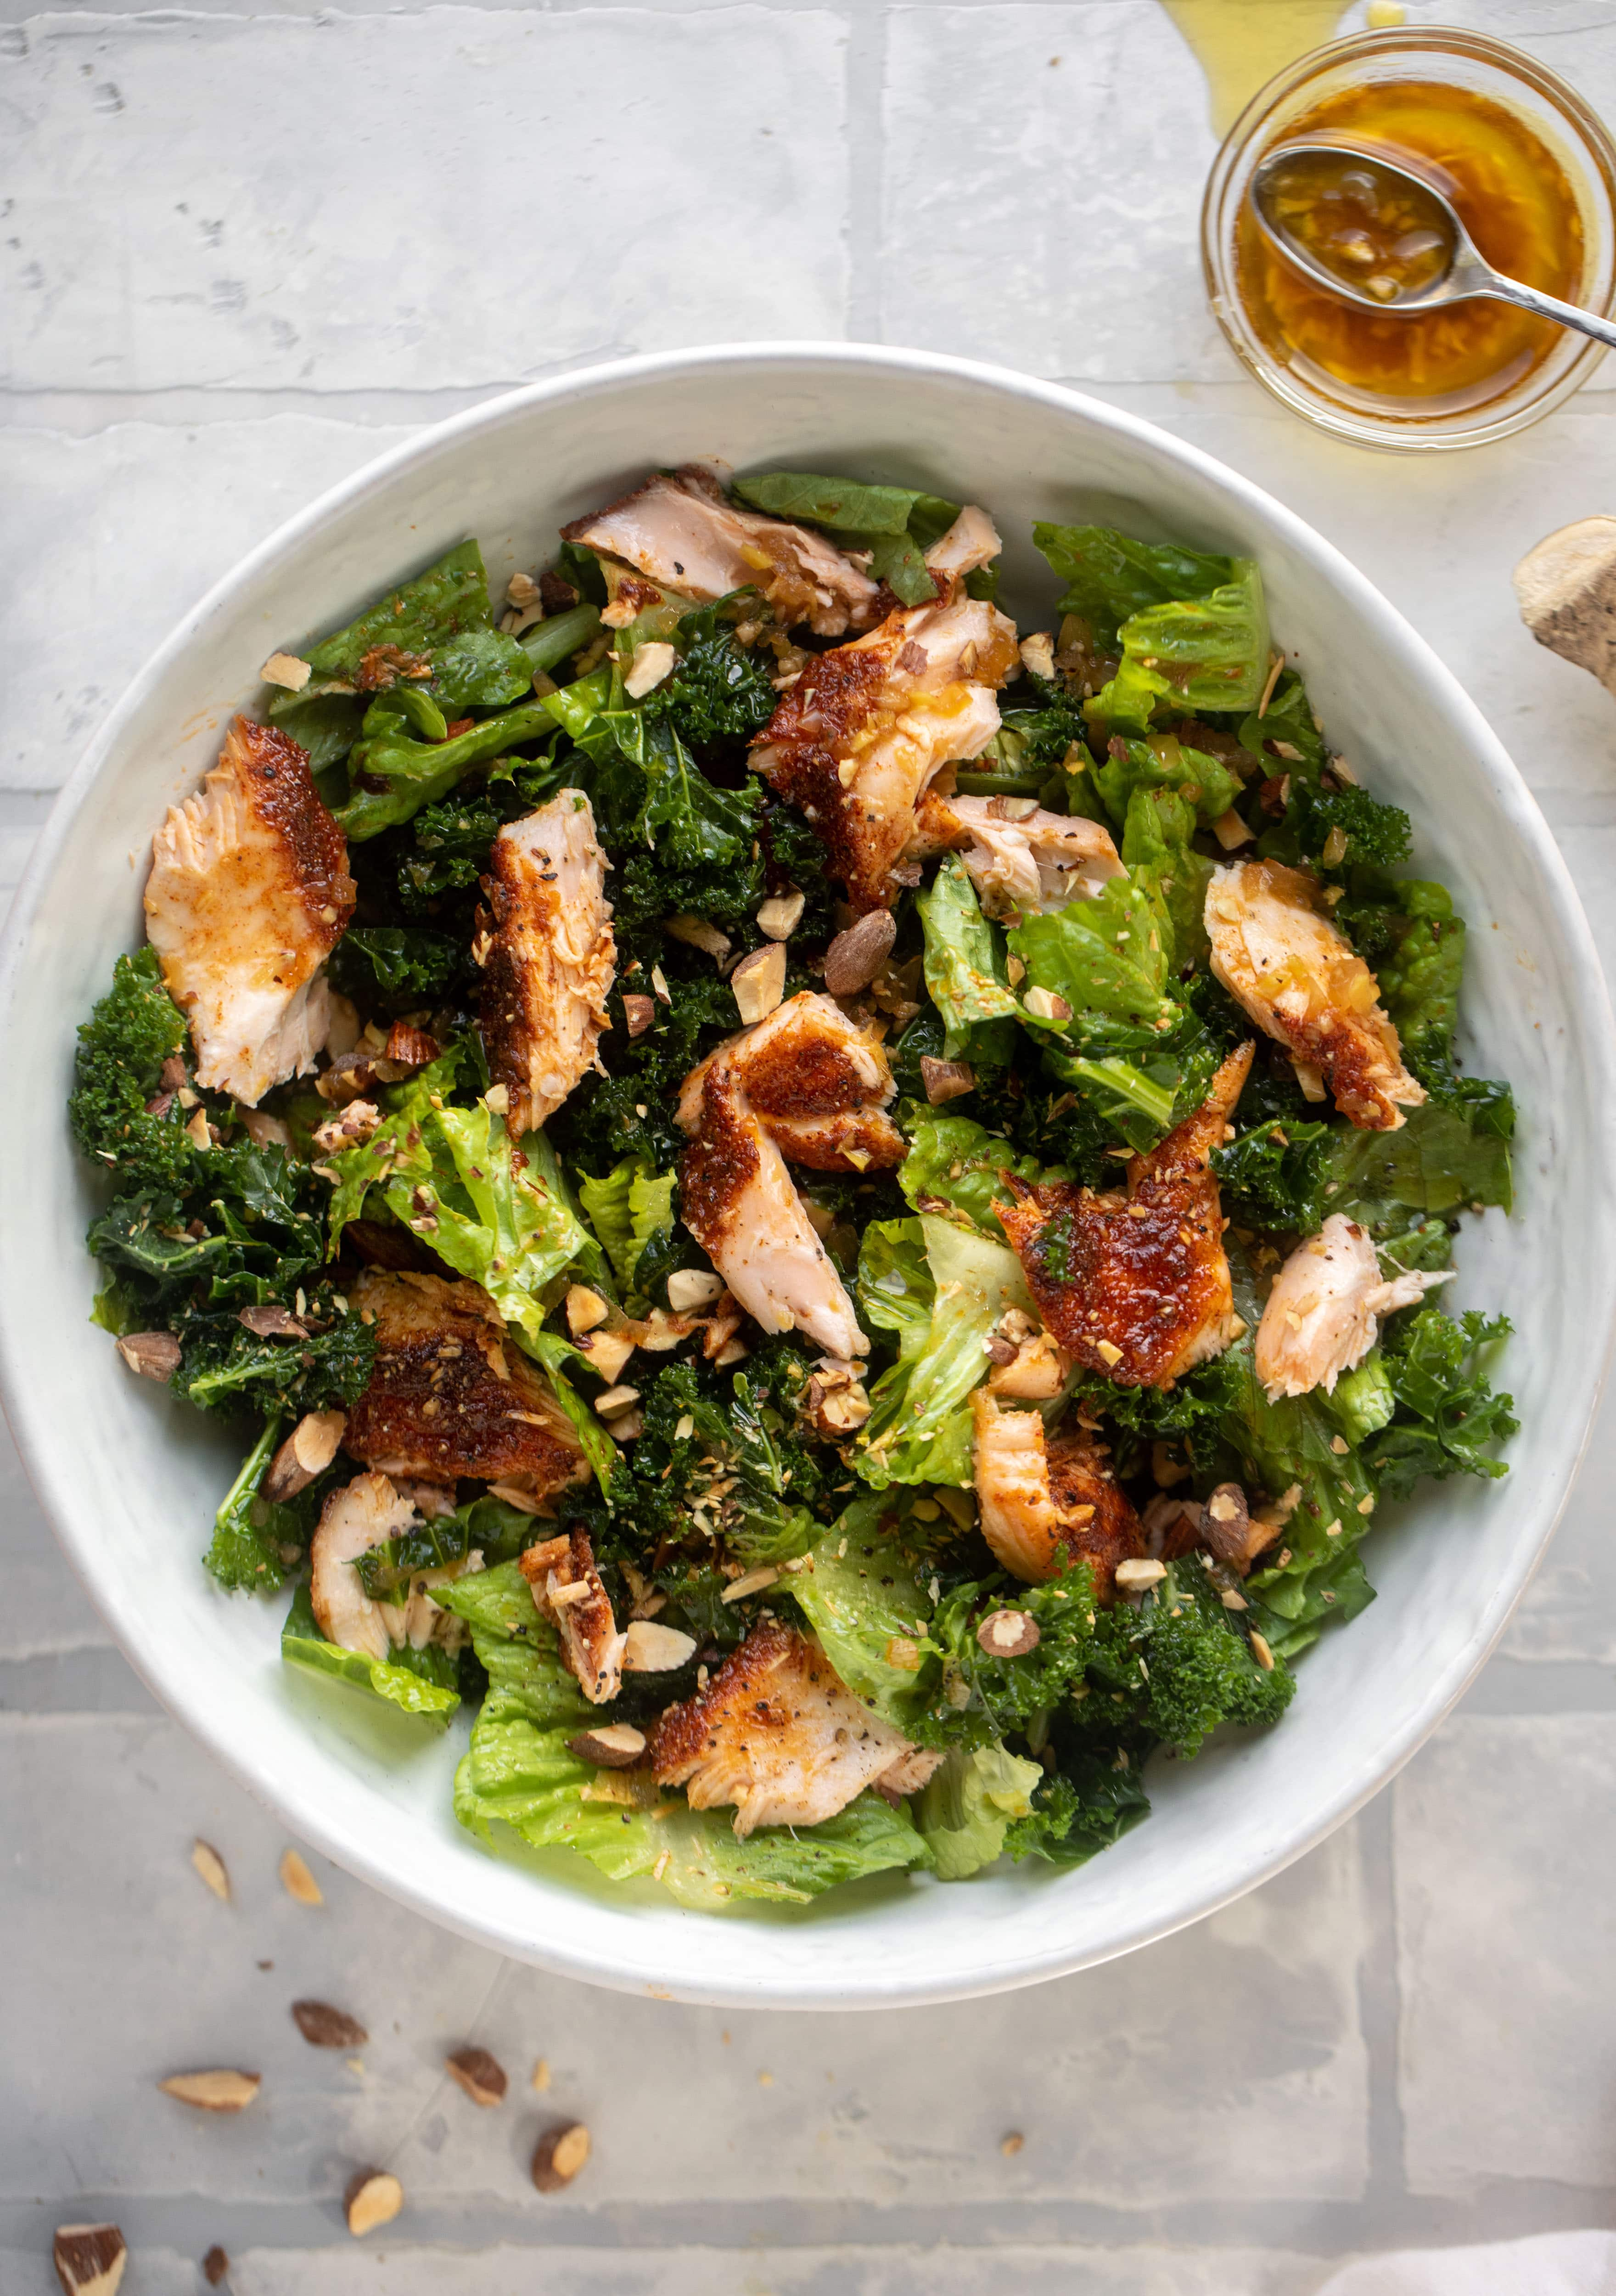 This ginger salmon salad has the flaky, flavorful roasted salmon on top of kale and romaine, drizzled with warm ginger vinaigrette.